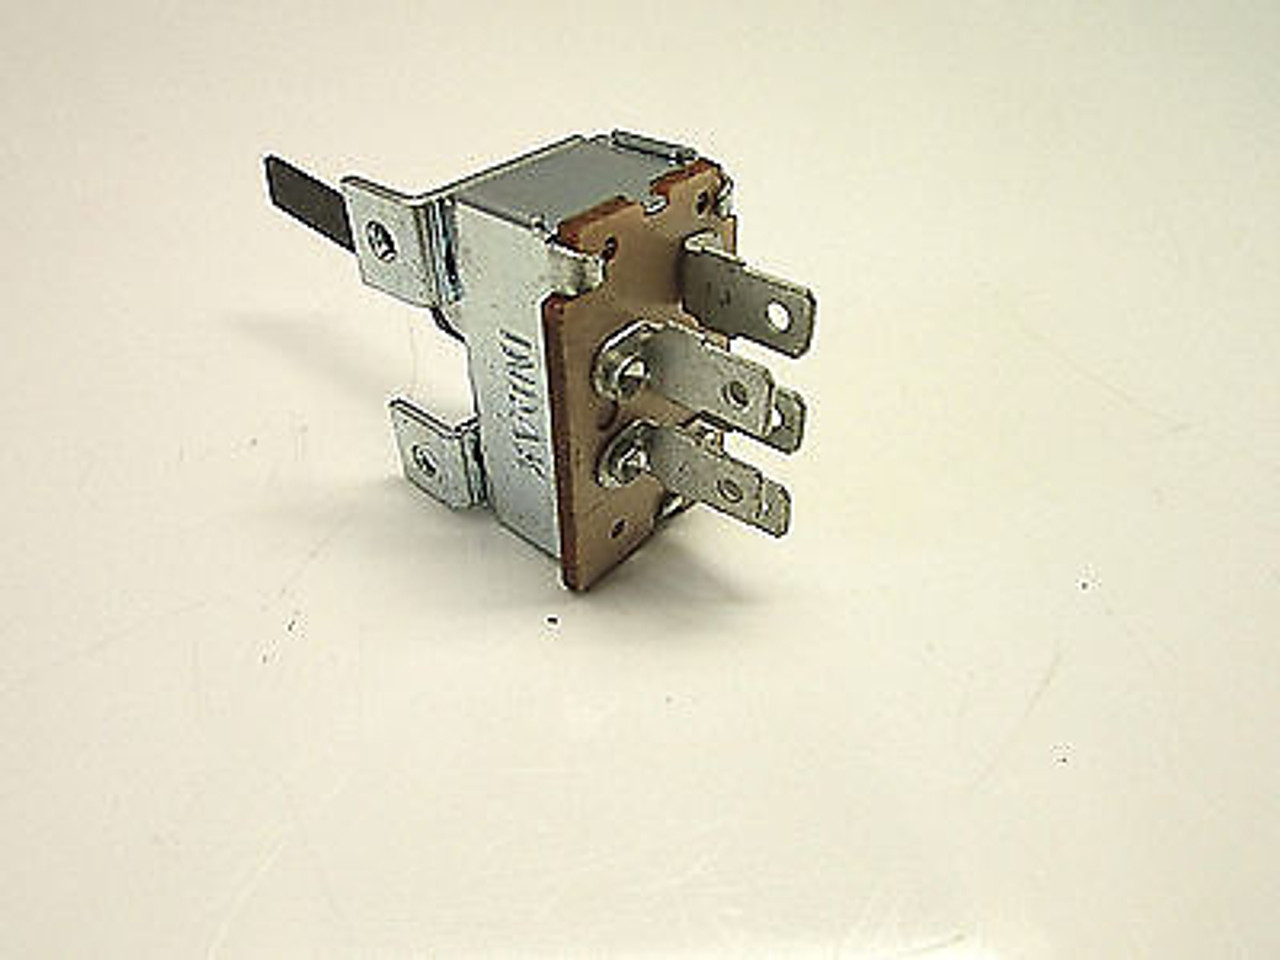 NEW INDAK BLOWER RESISTOR SWITCH NEW MADE IN USA